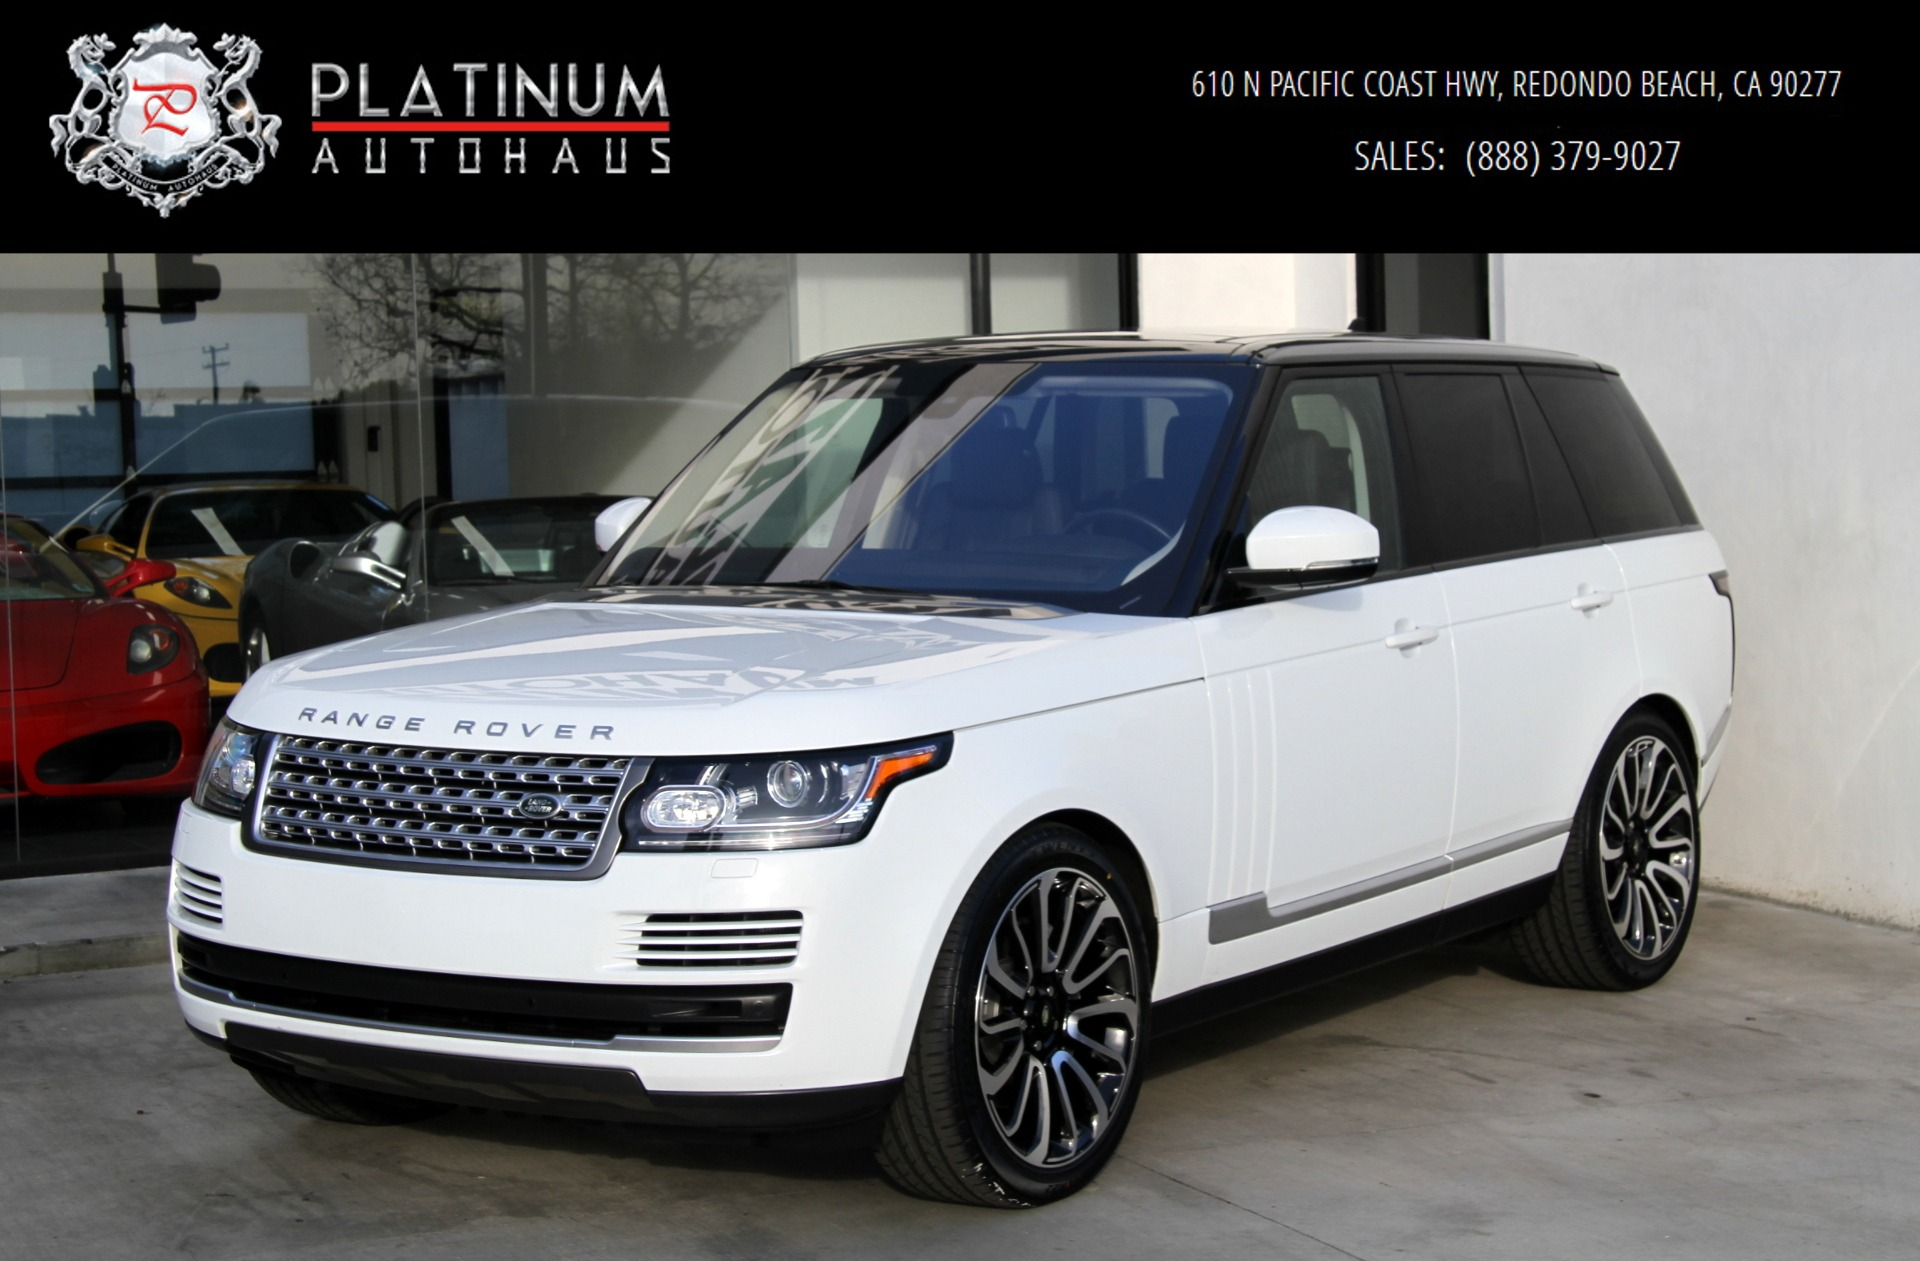 Used Range Rovers For Sale >> 2016 Land Rover Range Rover Hse Stock 6092 For Sale Near Redondo